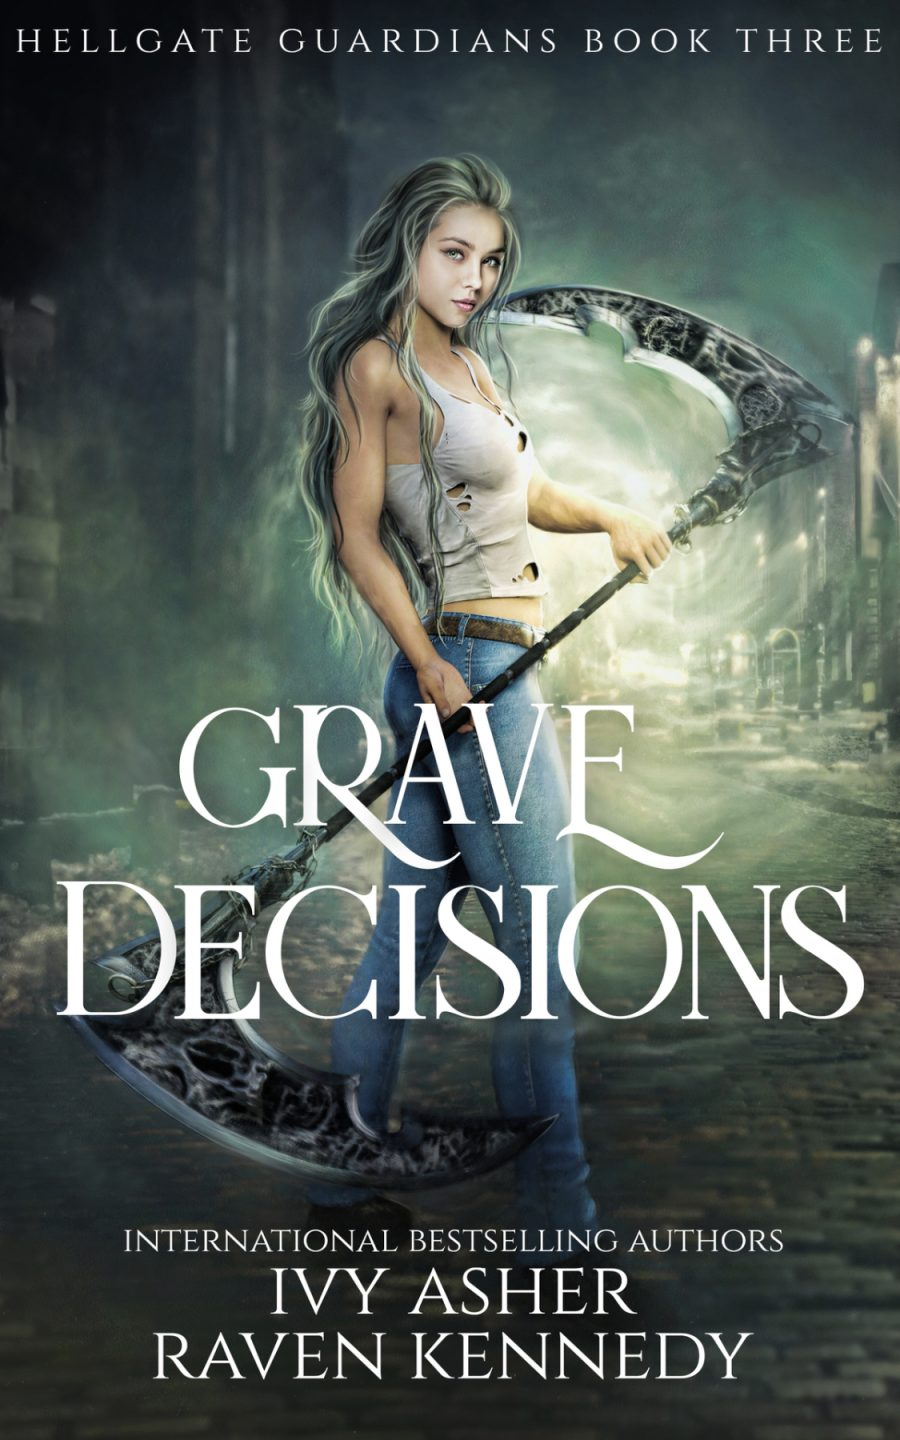 Grave Decisions (Hellgate Guardian's - Book 3) by Raven Kennedy and Ivy Asher - A Book Review #BookReview #5Stars #ParanormalFantasy #Demons #KindleUnlimited #KU